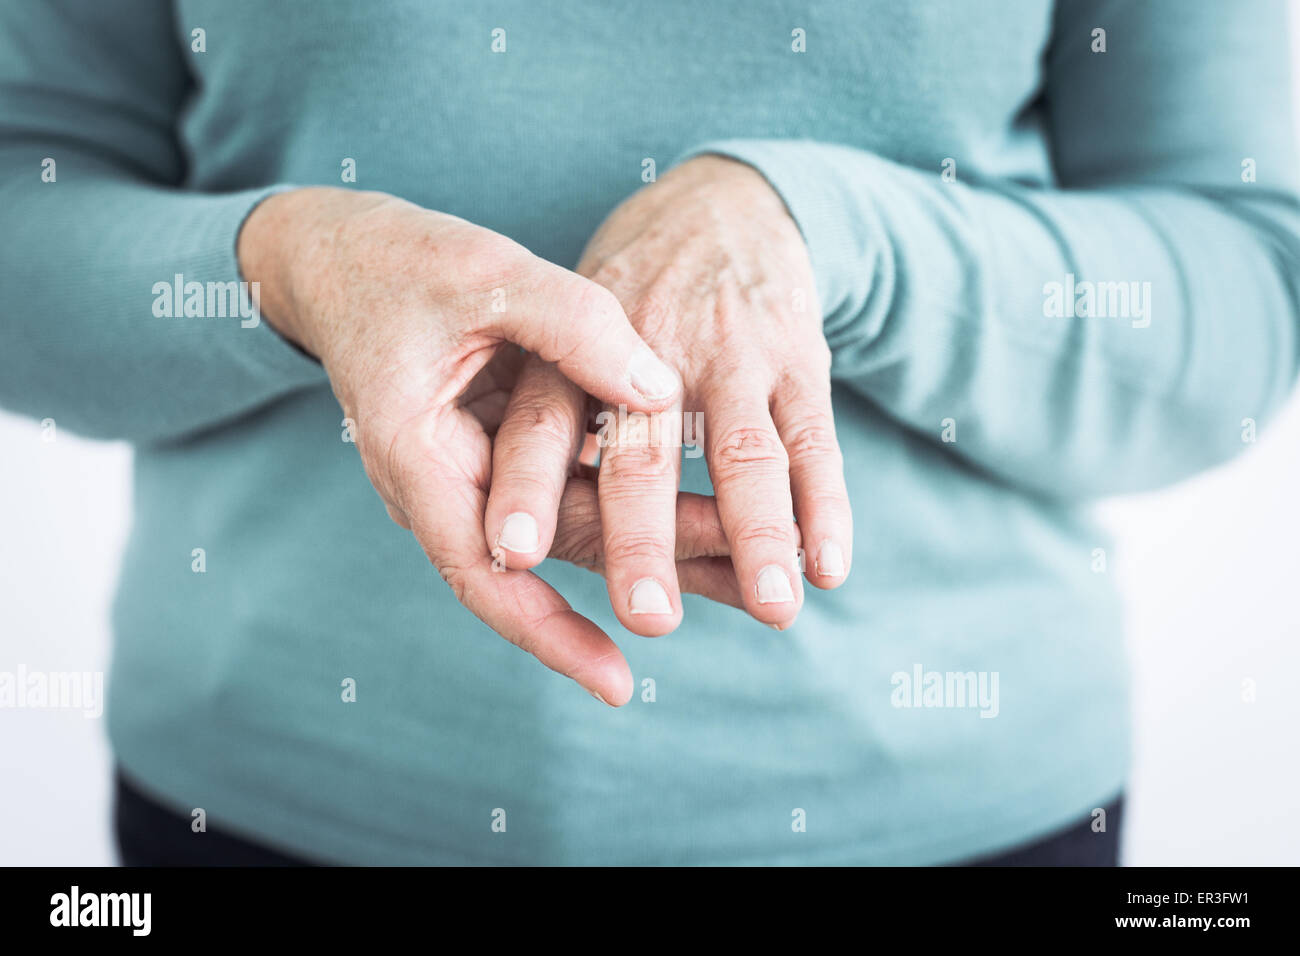 Senior woman suffering from an articular pain in the hand. - Stock Image